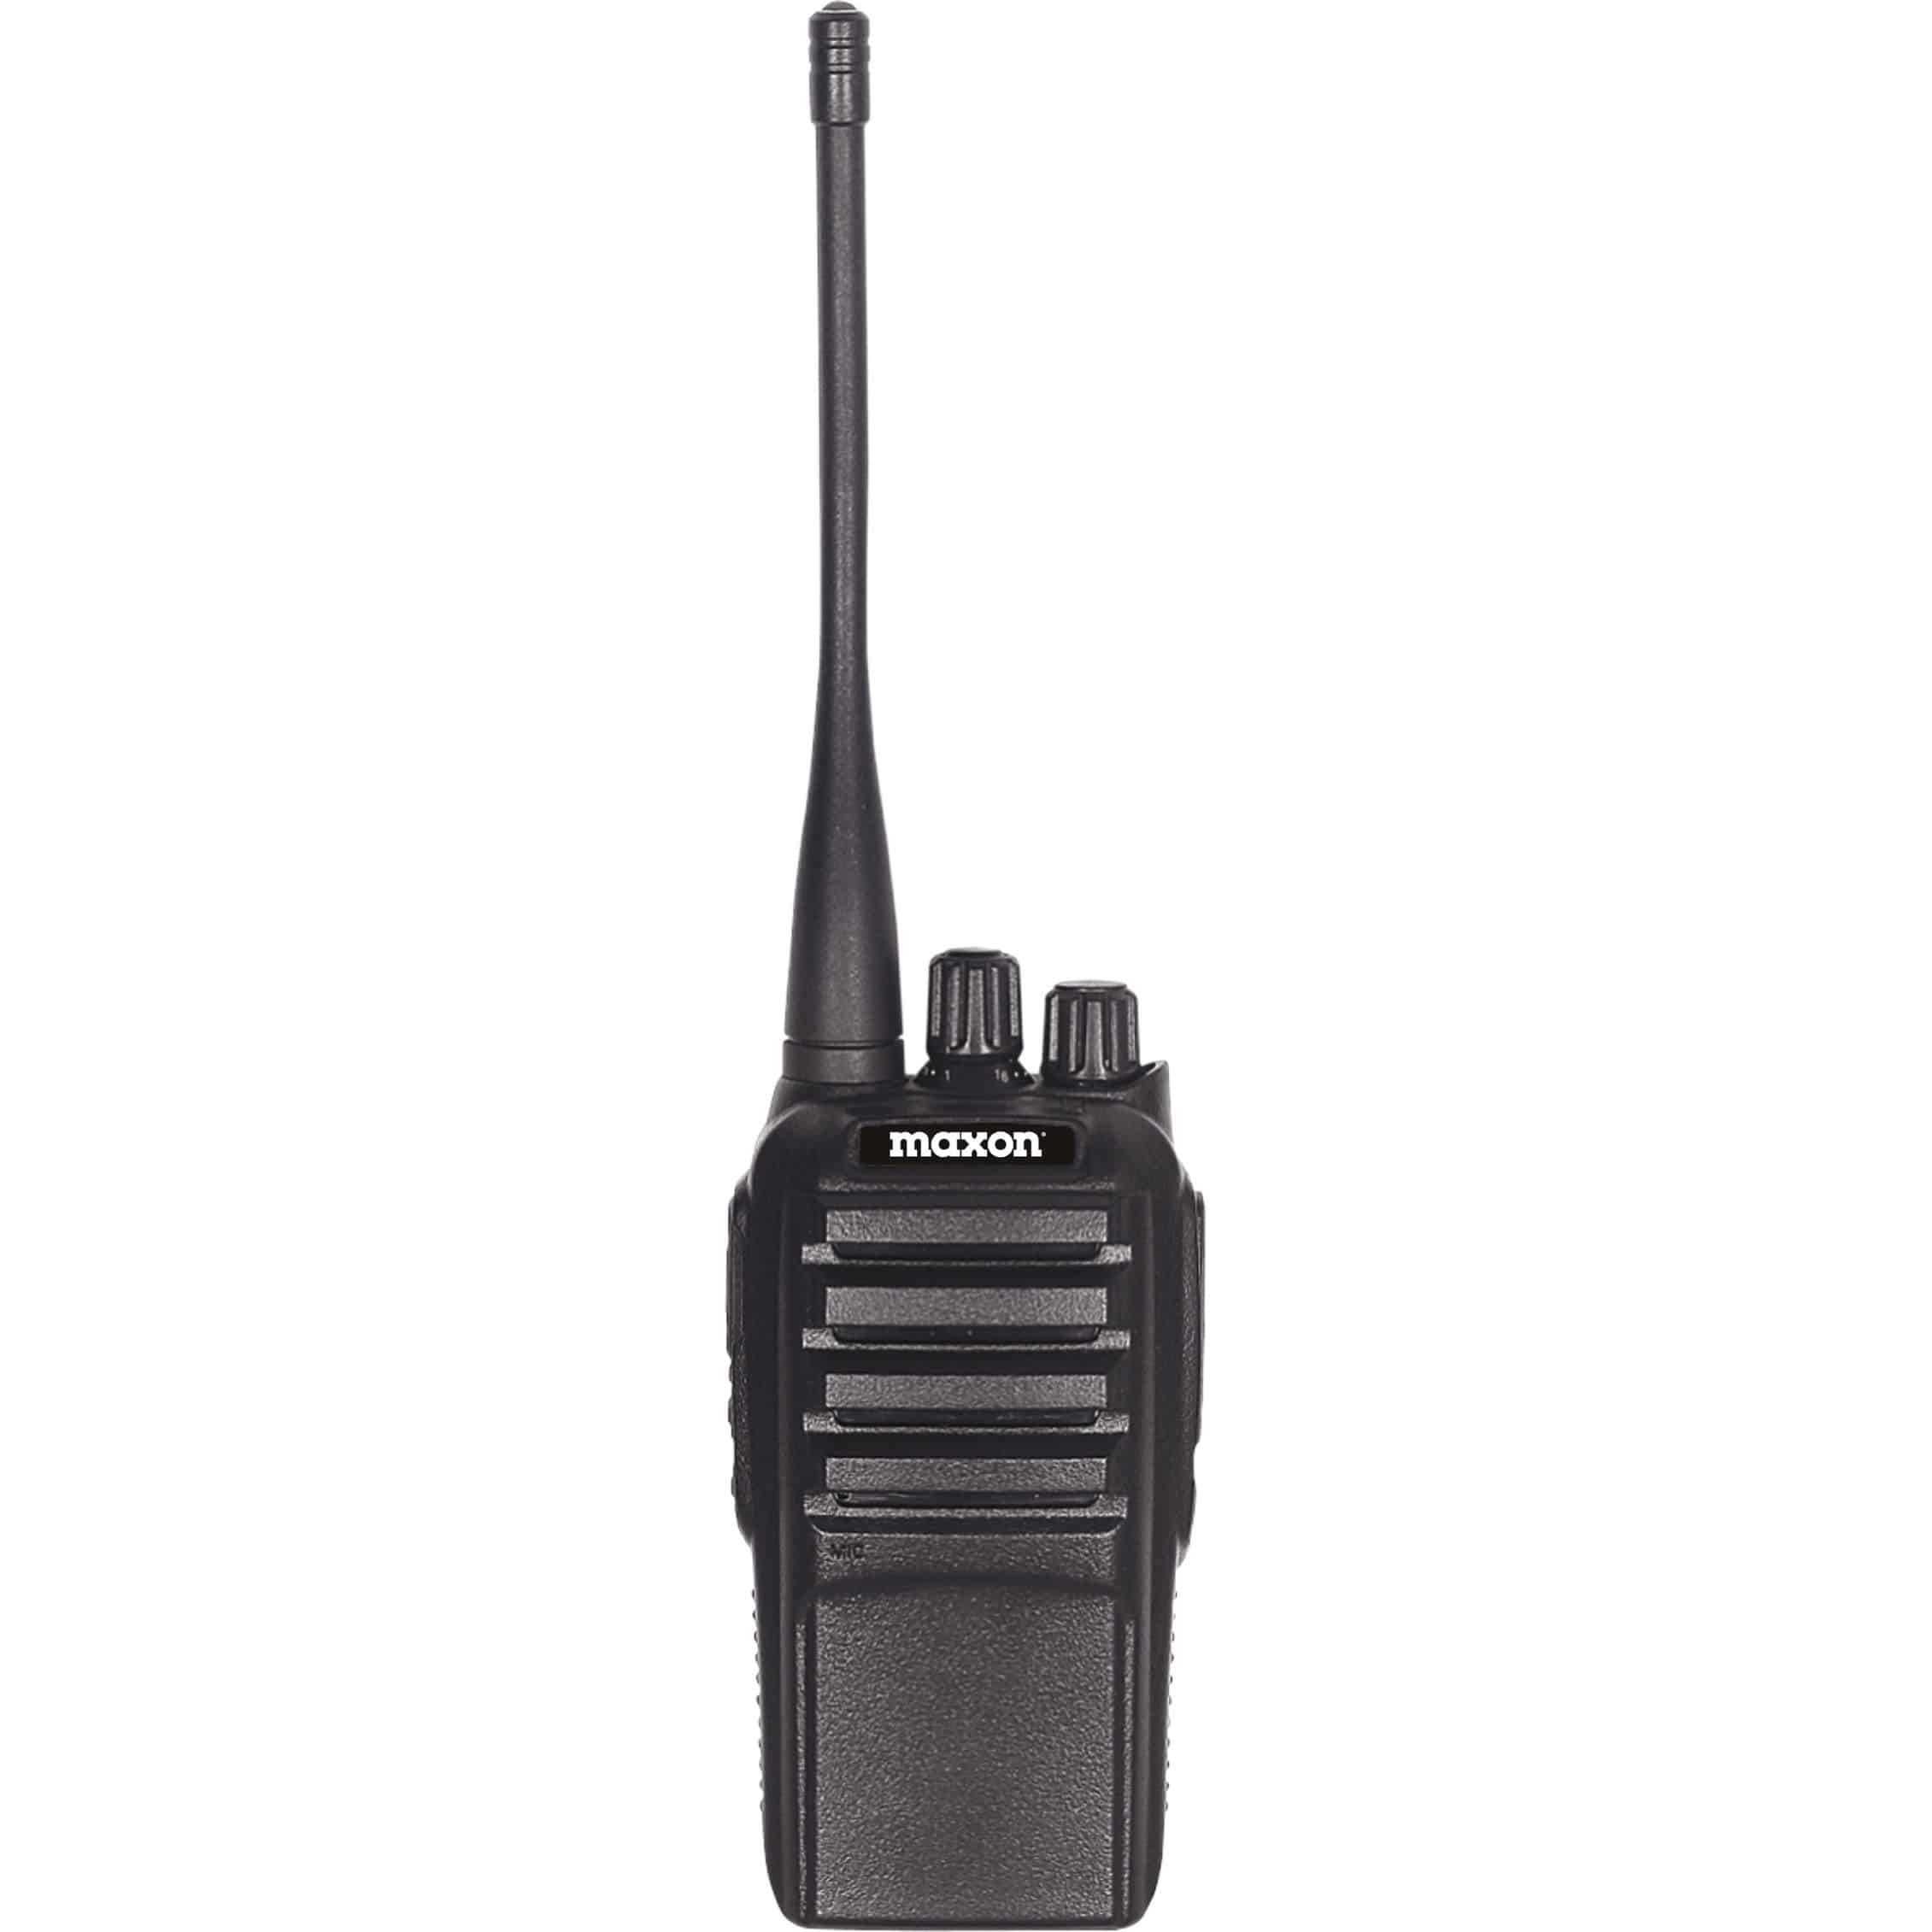 Ts3416 Maxon Professional Handheld Uhf Radio as well 151260066639 also Article1504287 together with 142227202653 additionally RadioCB Ham Shortwave. on two meter ssb radios